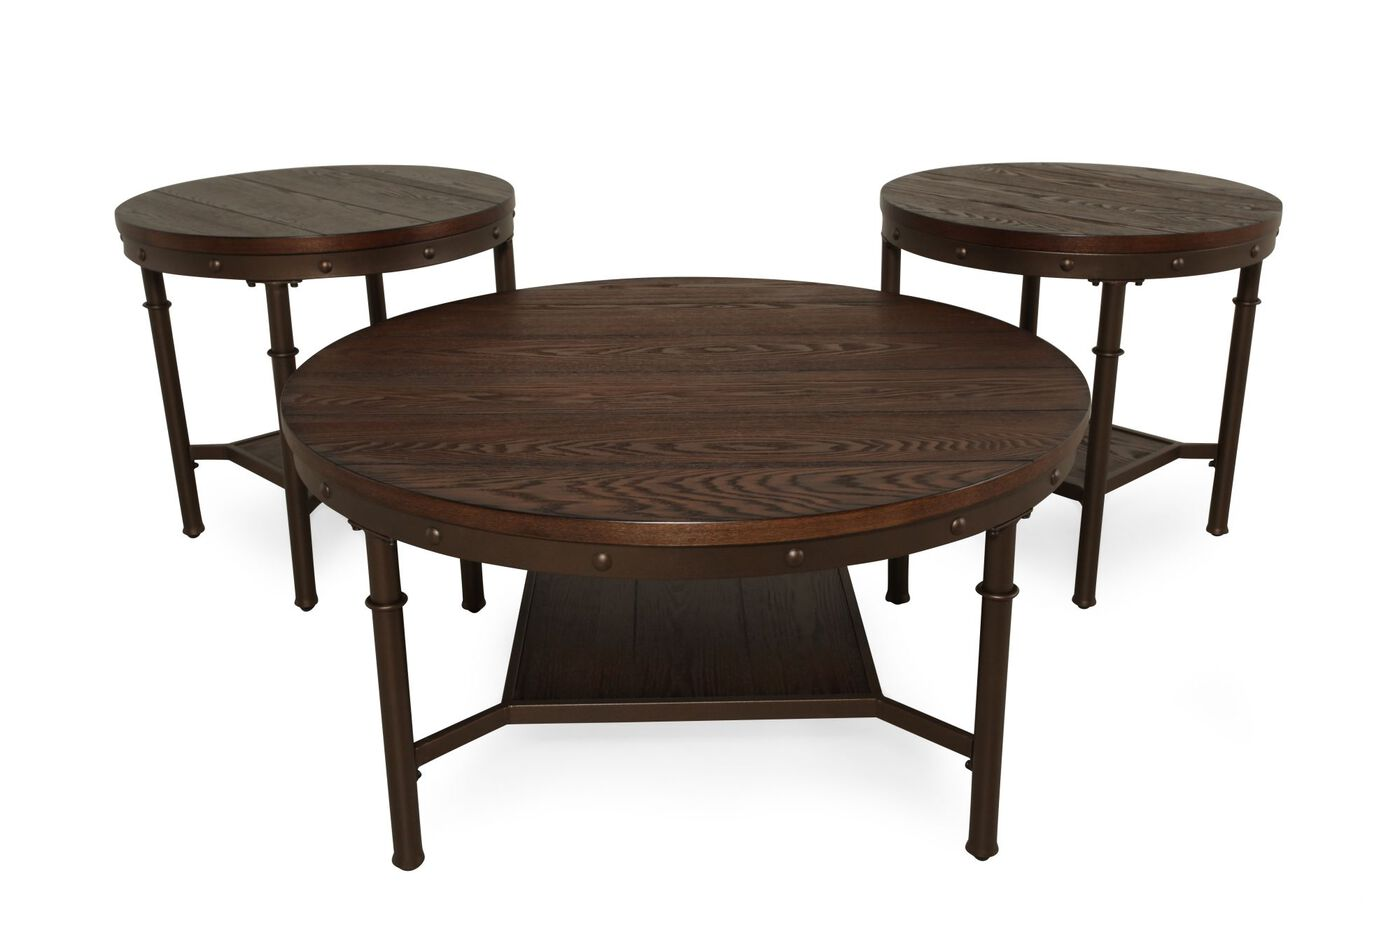 Ashley sandling coffee table set mathis brothers furniture ashley sandling coffee table set geotapseo Images